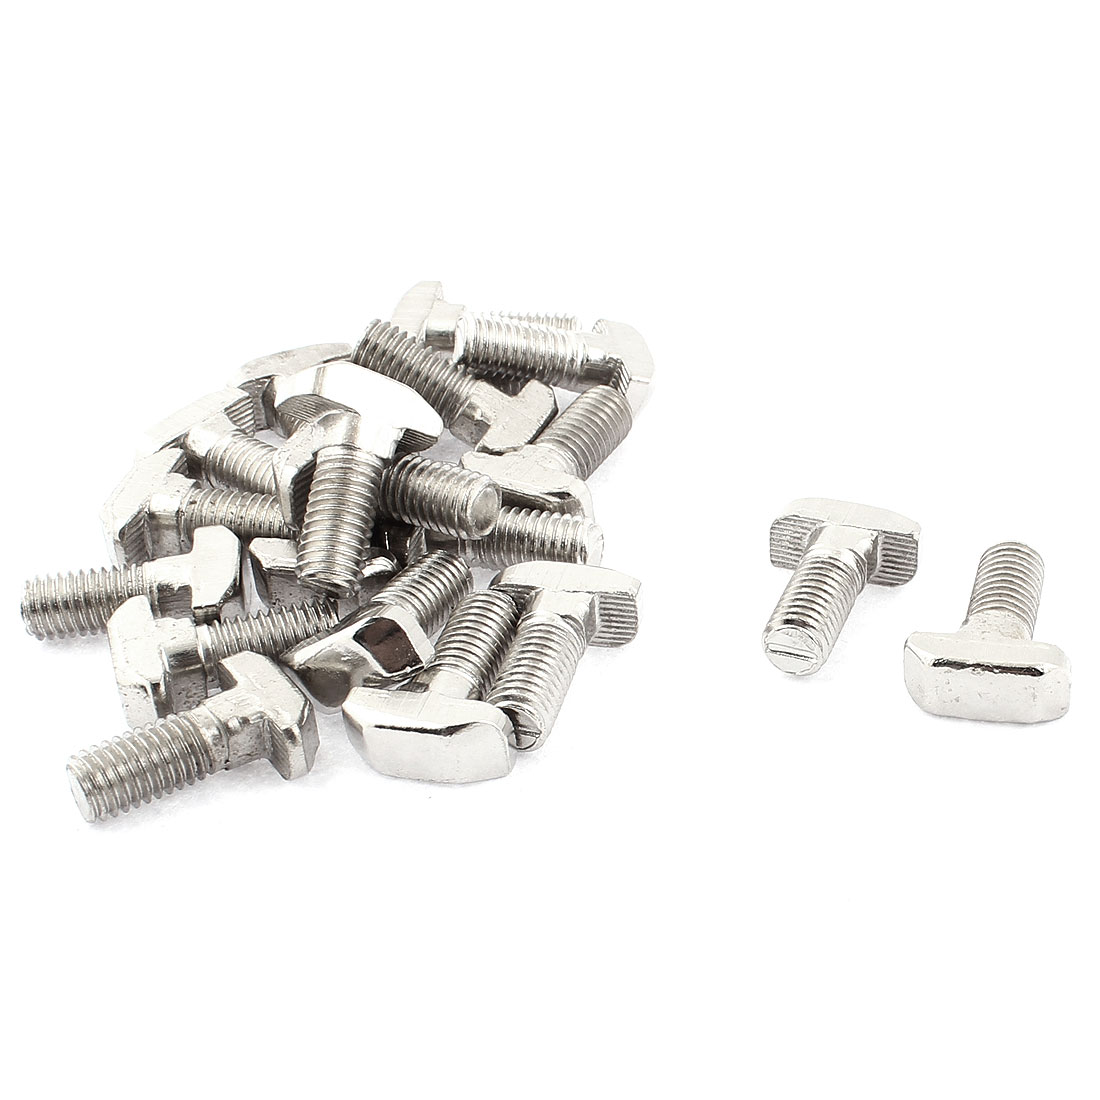 M8 x 20mm Metal T Slot Drop-in Stud Sliding Bolt Screw Silver Tone 20pcs